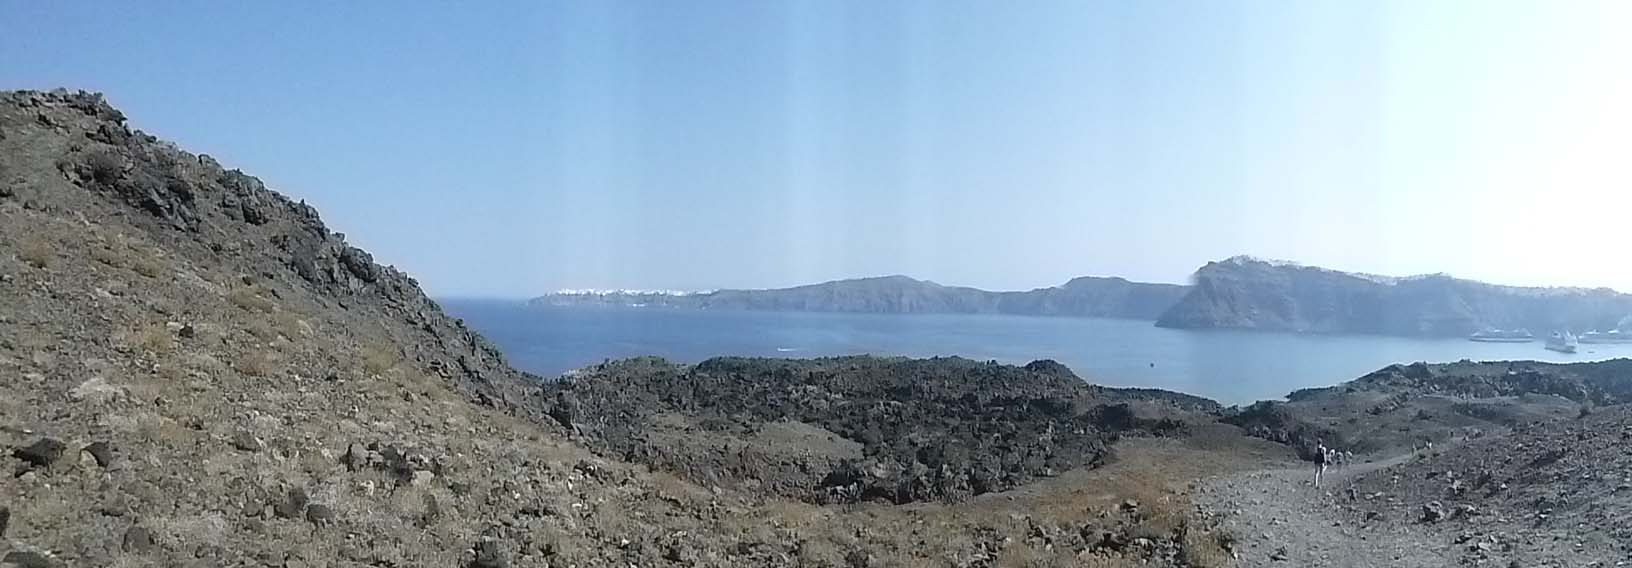 View from the Santorini volcano